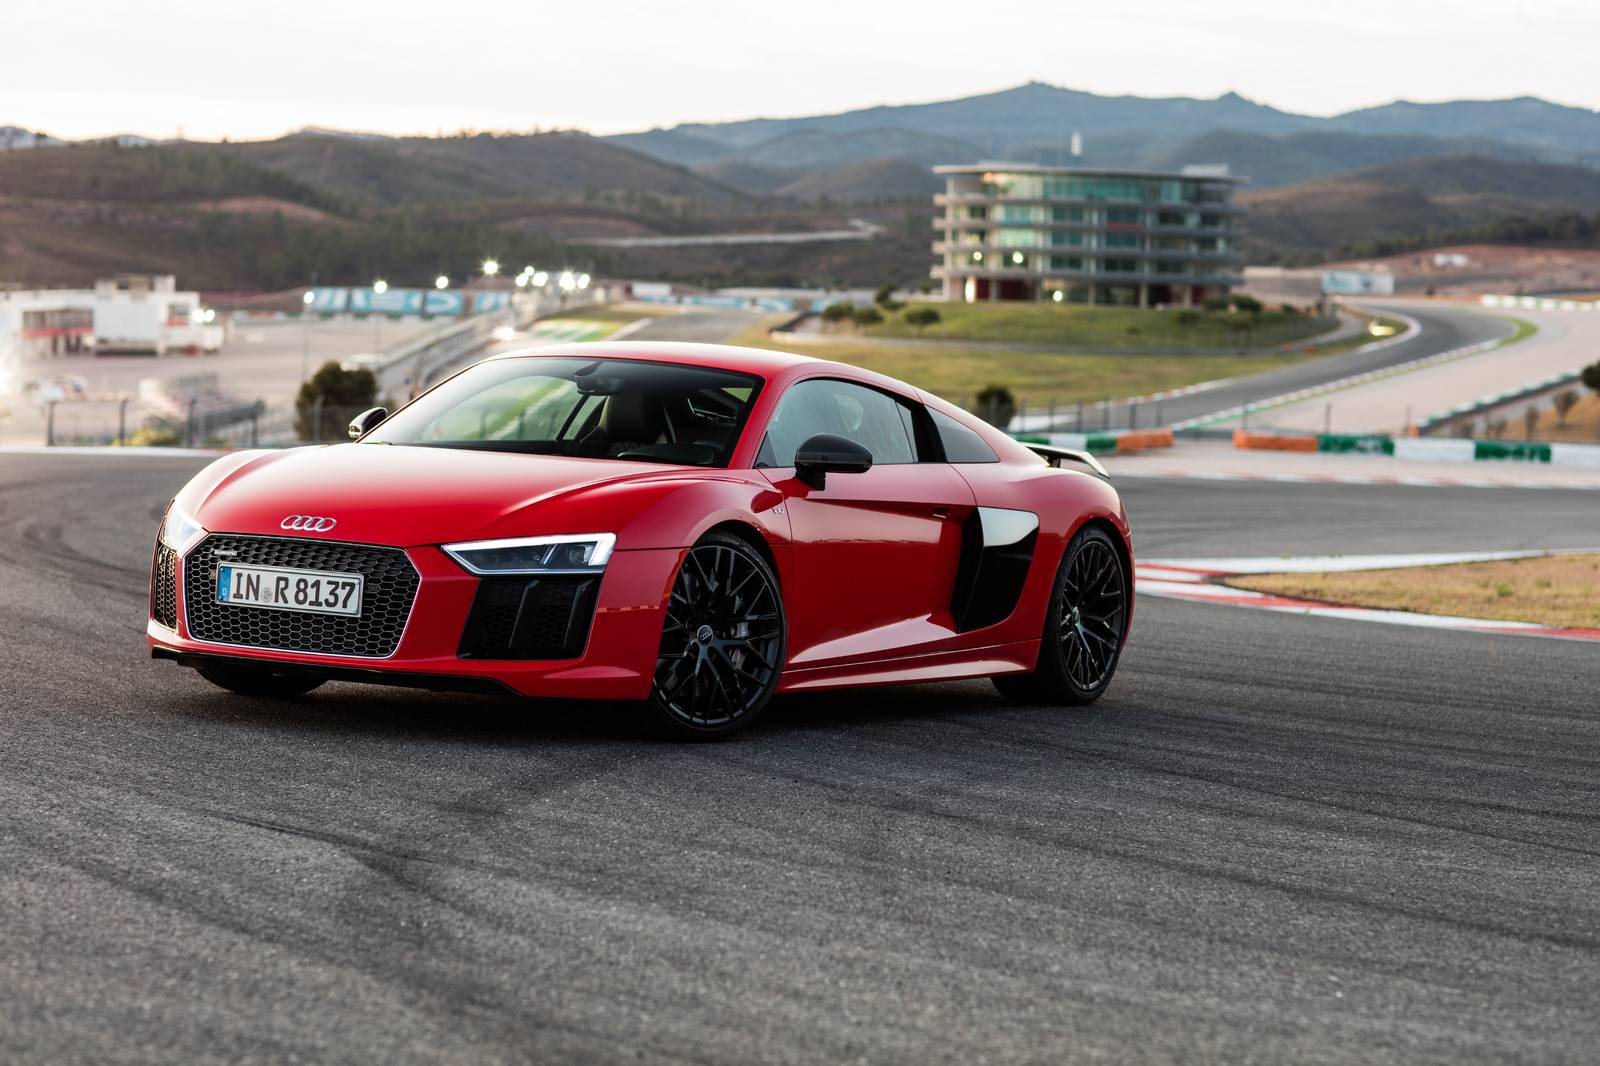 2016 audi r8 v10 priced from 162 900 in the us gtspirit. Black Bedroom Furniture Sets. Home Design Ideas